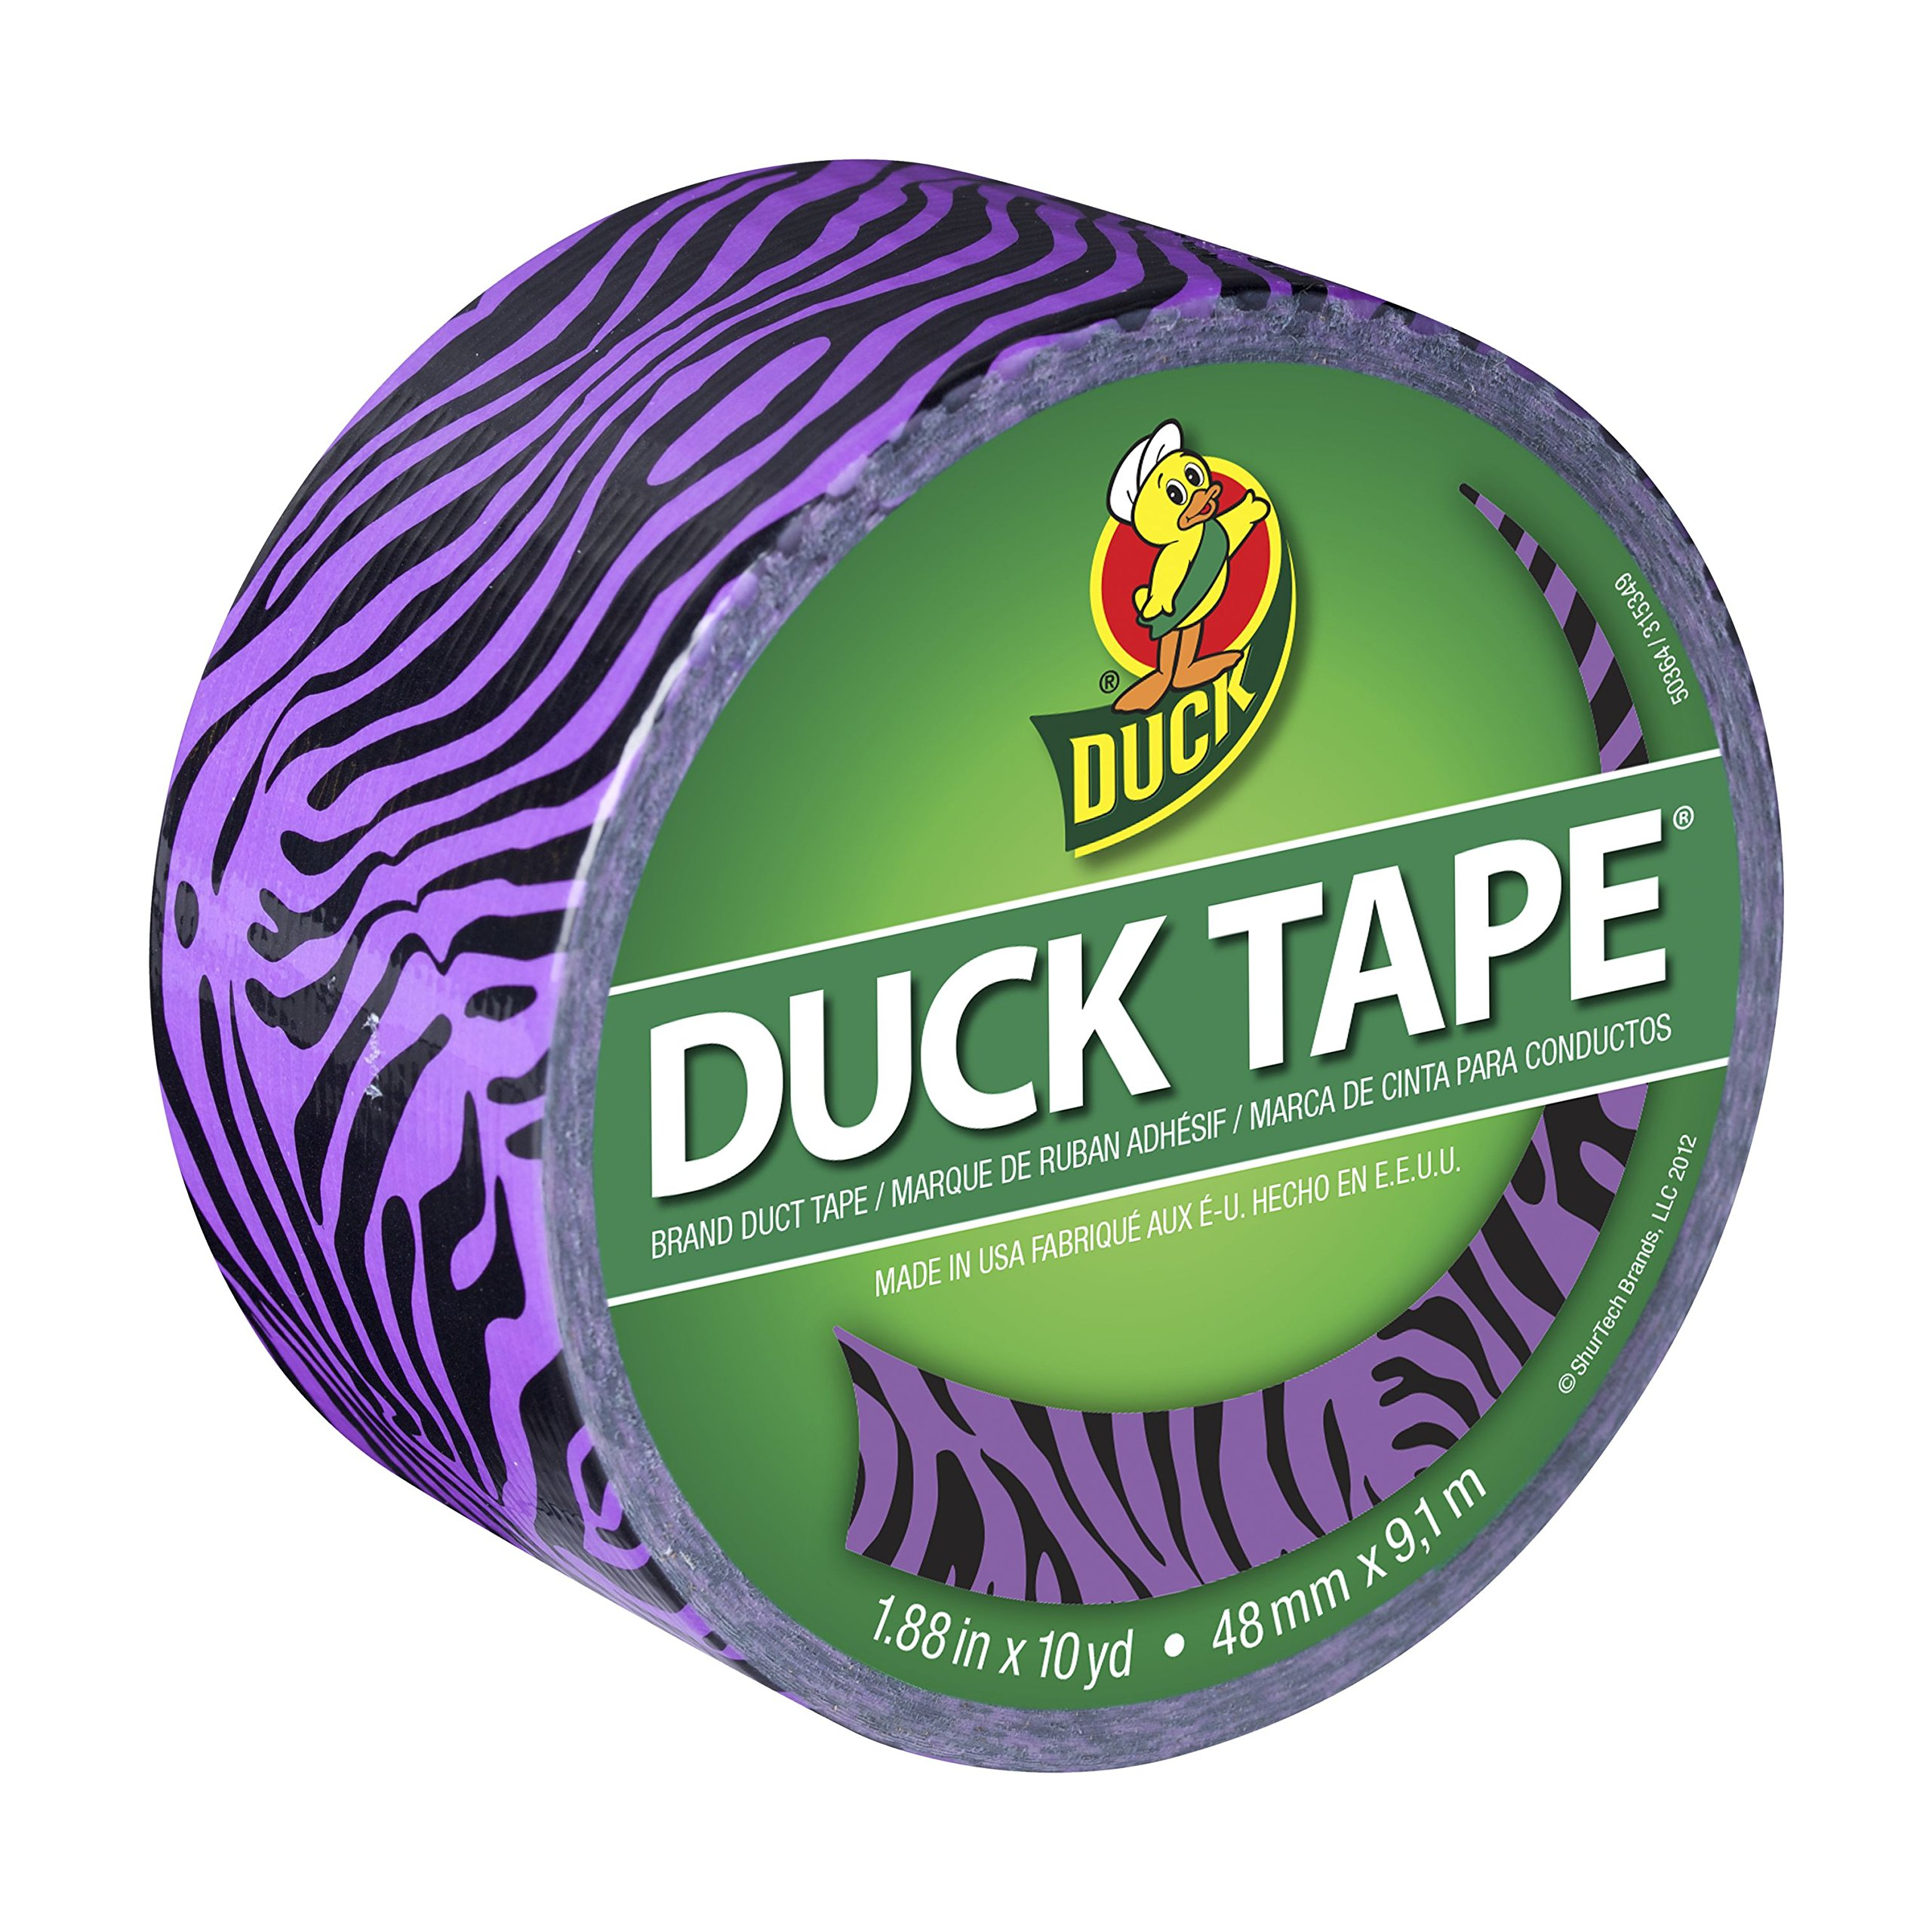 Duck Brand 281517 Printed Duct Tape, Purple Zebra, 1.88 Inches x 10 Yards, Single Roll